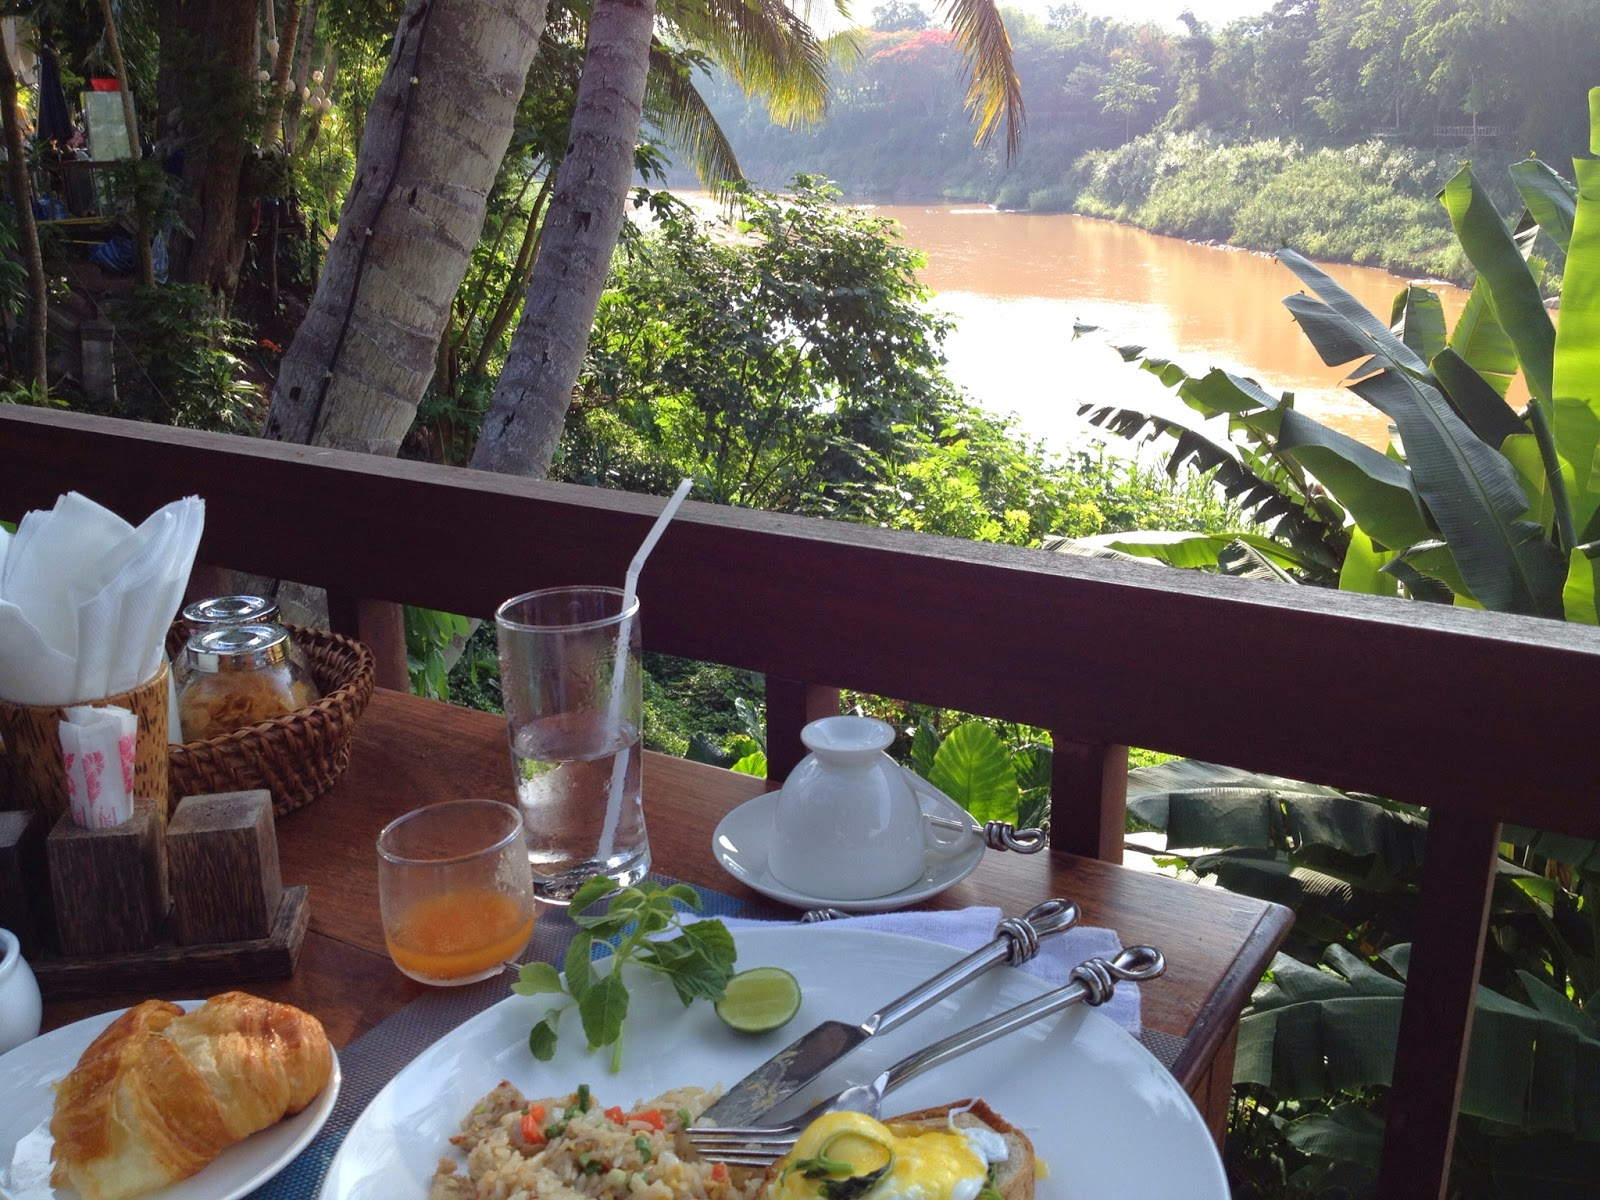 Luang Prabang - River view during breakfast at our hotel